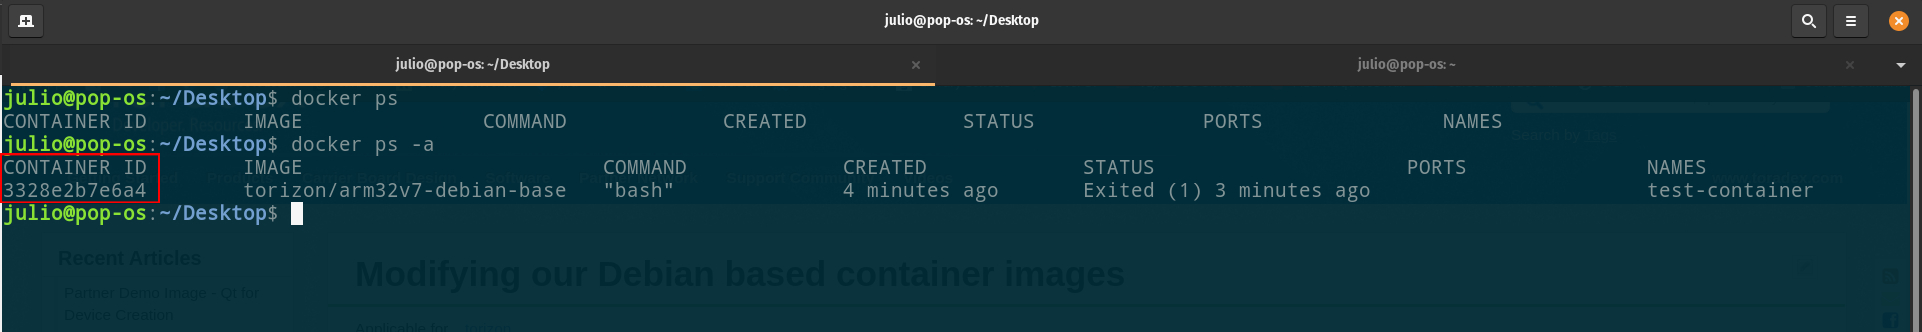 Docker container ID